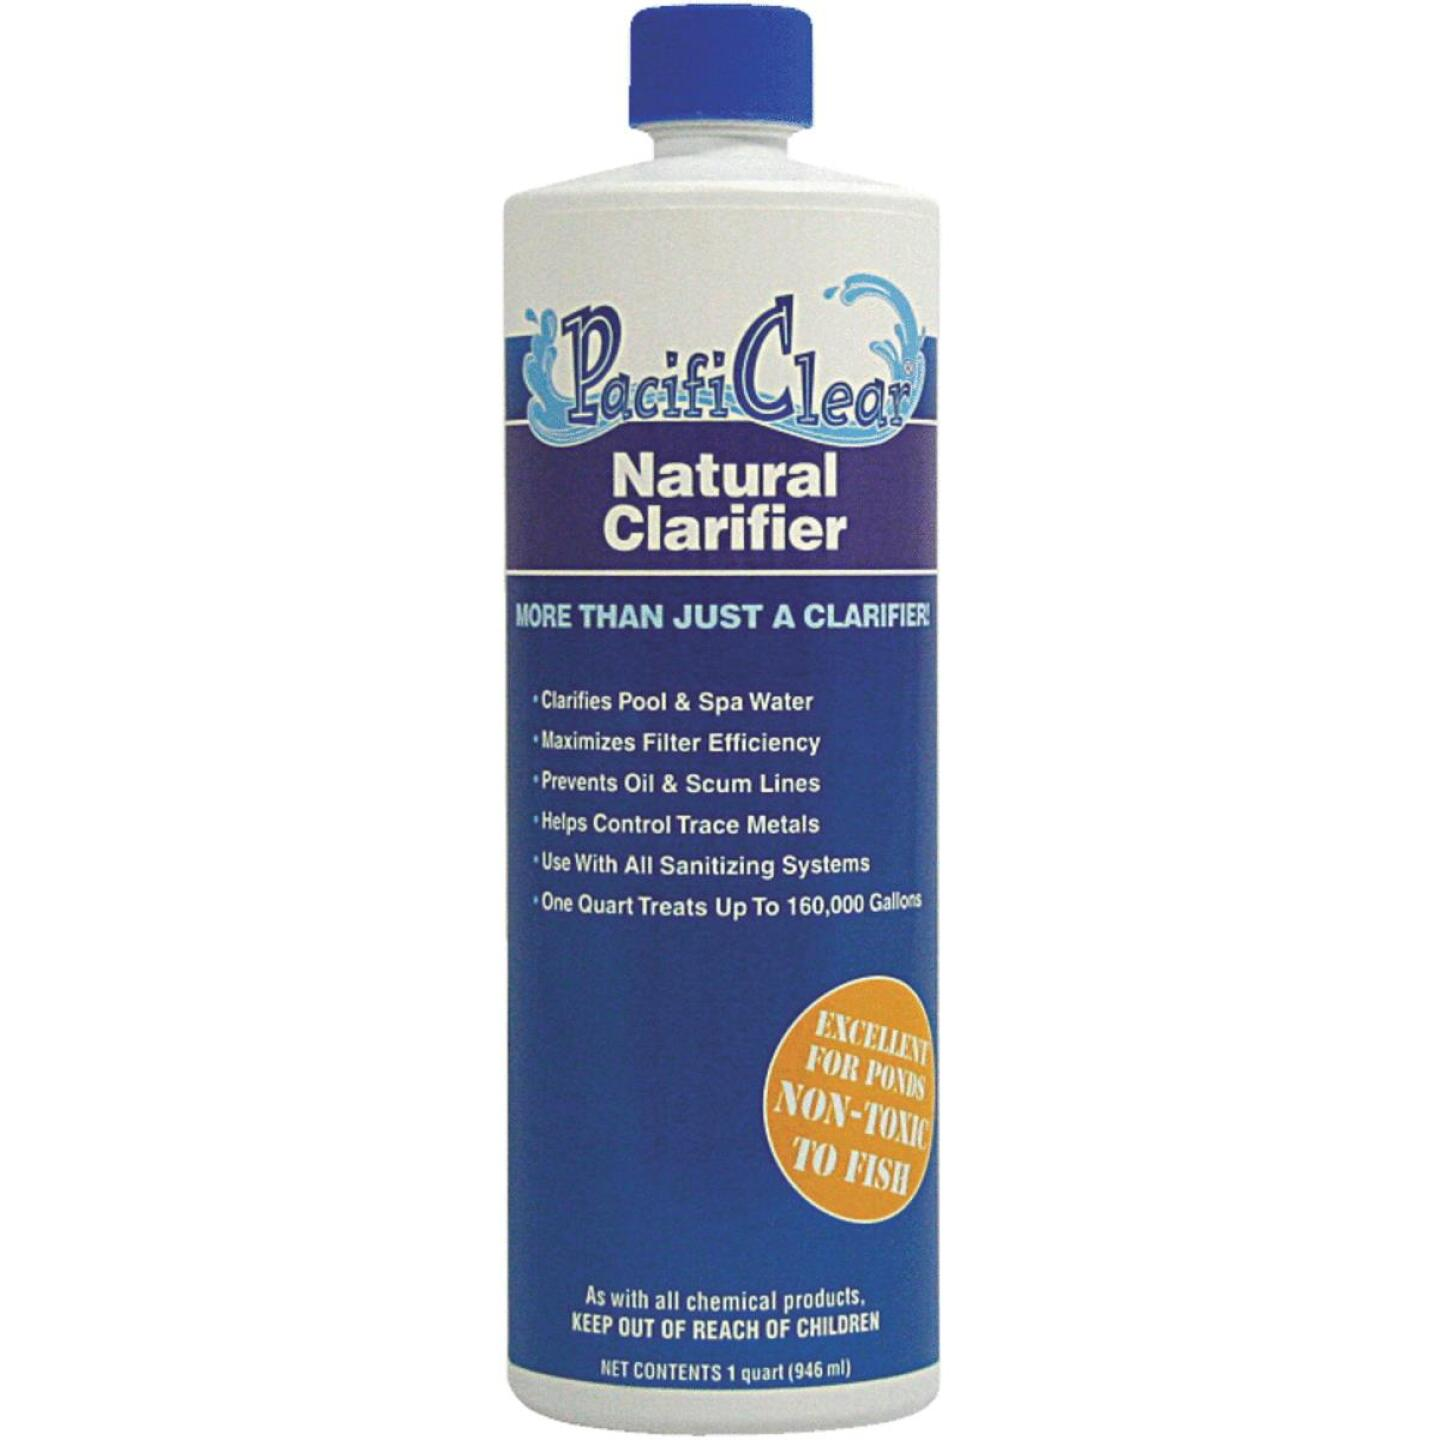 PacifiClear 1 Qt. Liquid Natural Clarifier Image 1